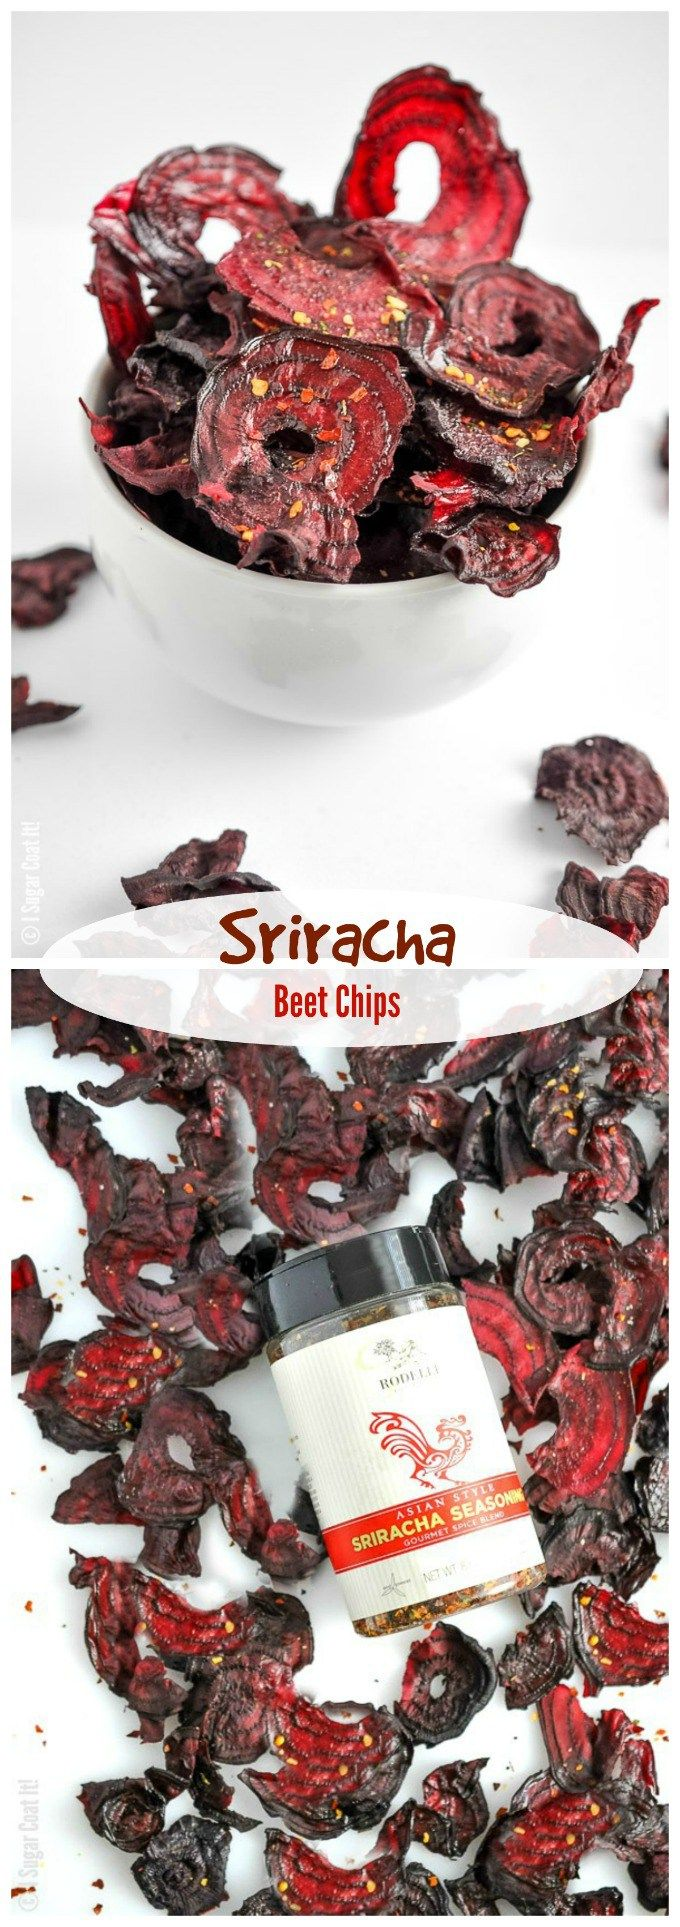 327 best dehydrator recipes images on pinterest dehydrator recipes made in the dehydrator these sriracha beet chips are a snacktastic blend of crisp forumfinder Image collections